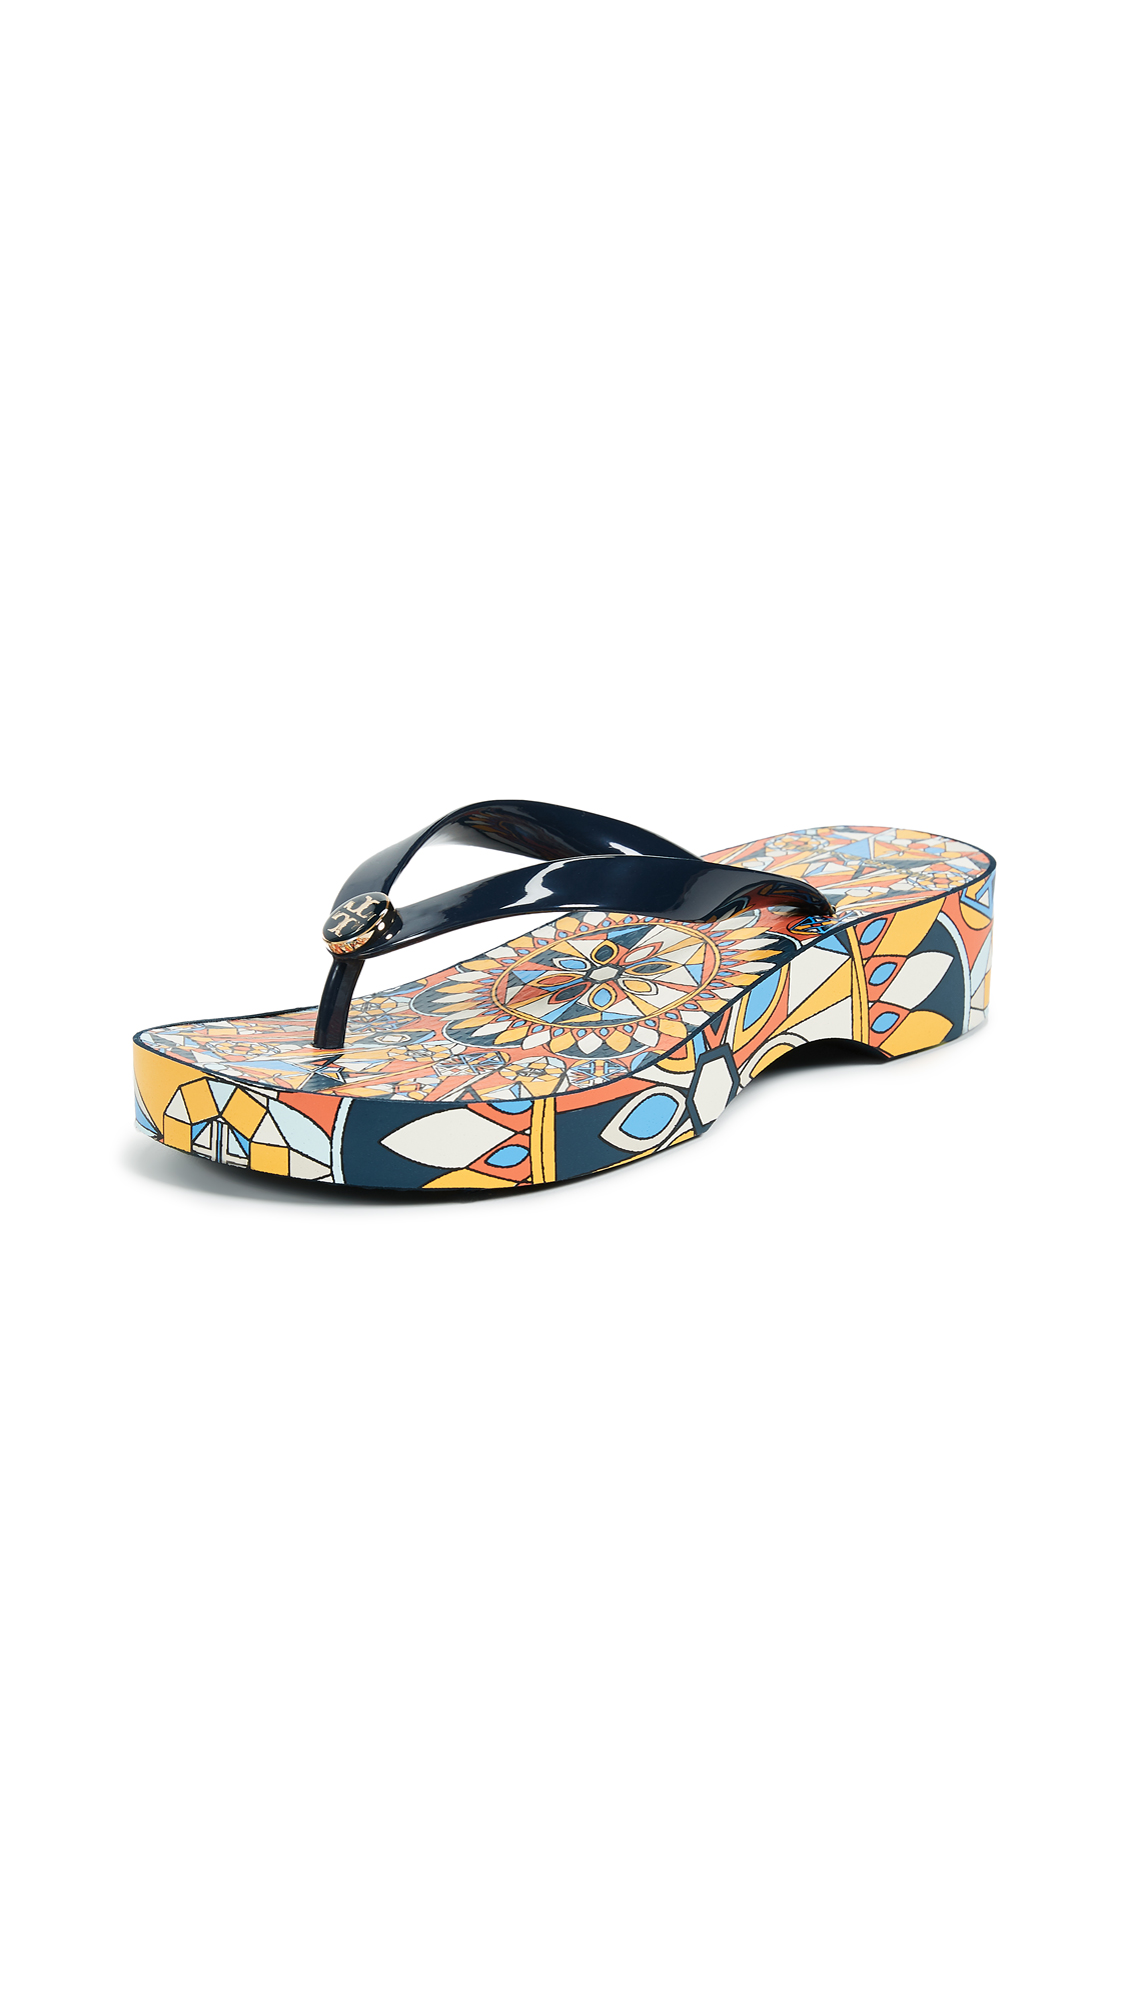 Tory Burch Cut Out Wedge Flip Flops - Tory Navy/Psychedelic Geo